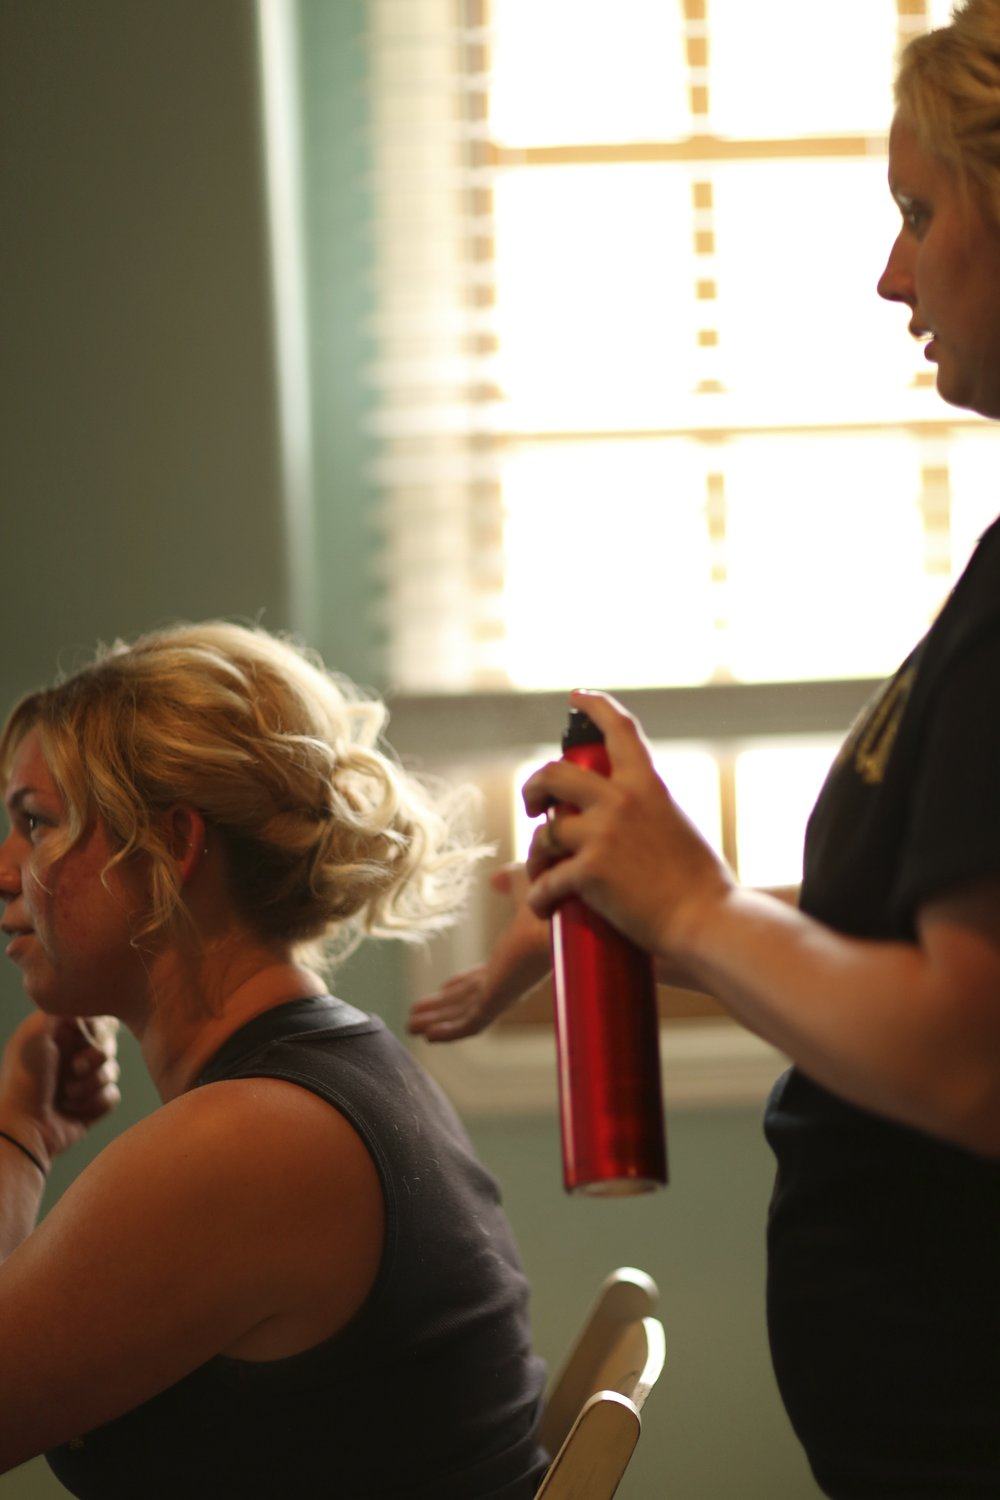 Looks like lots of Big Sexy Hair product was used as these bridesmaids got ready for the wedding and wedding reception.